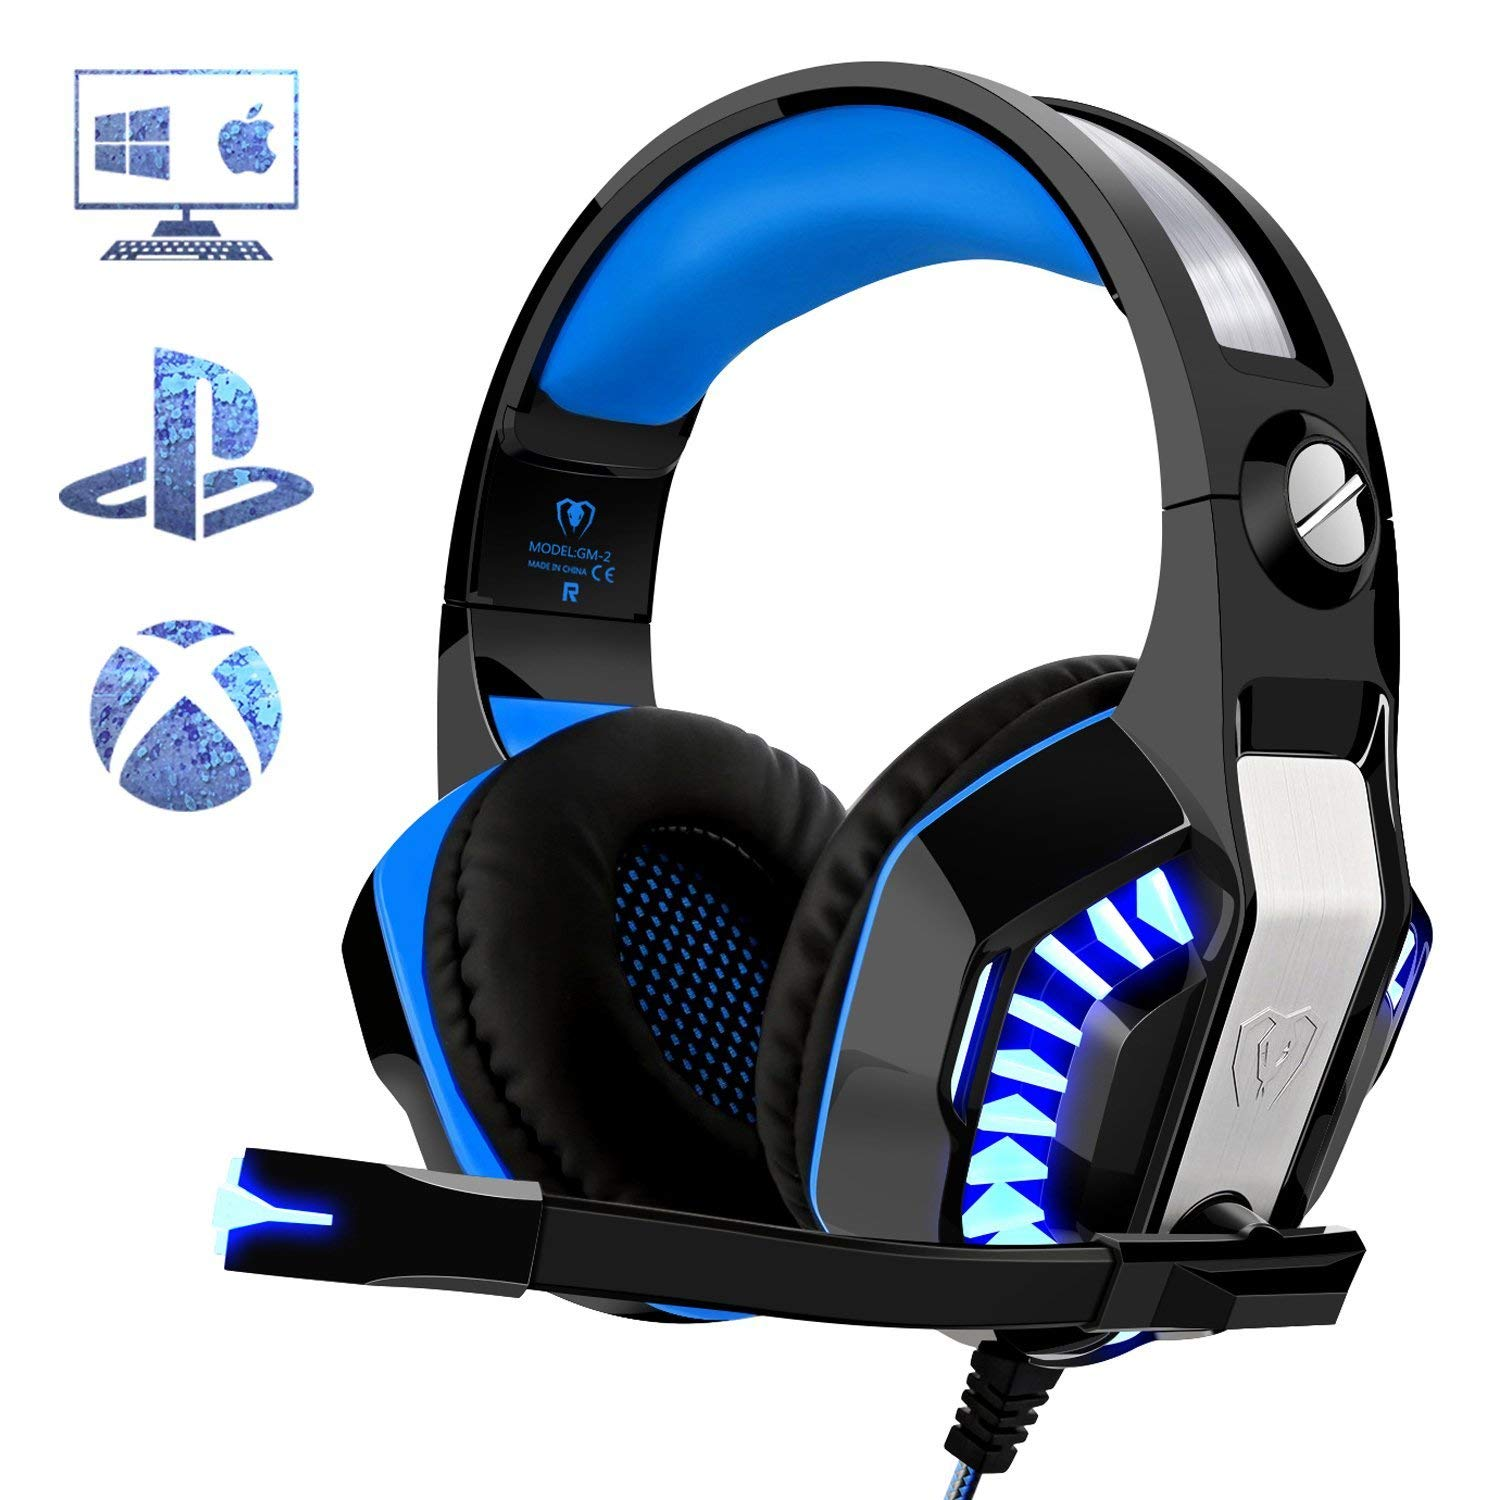 Gaming Headset for PC PS4, Beexcellent Stereo Deep Bass Surround Sound  Gaming Headphones with Microphone Noise Isolation Volume Control LED Lights  for ...